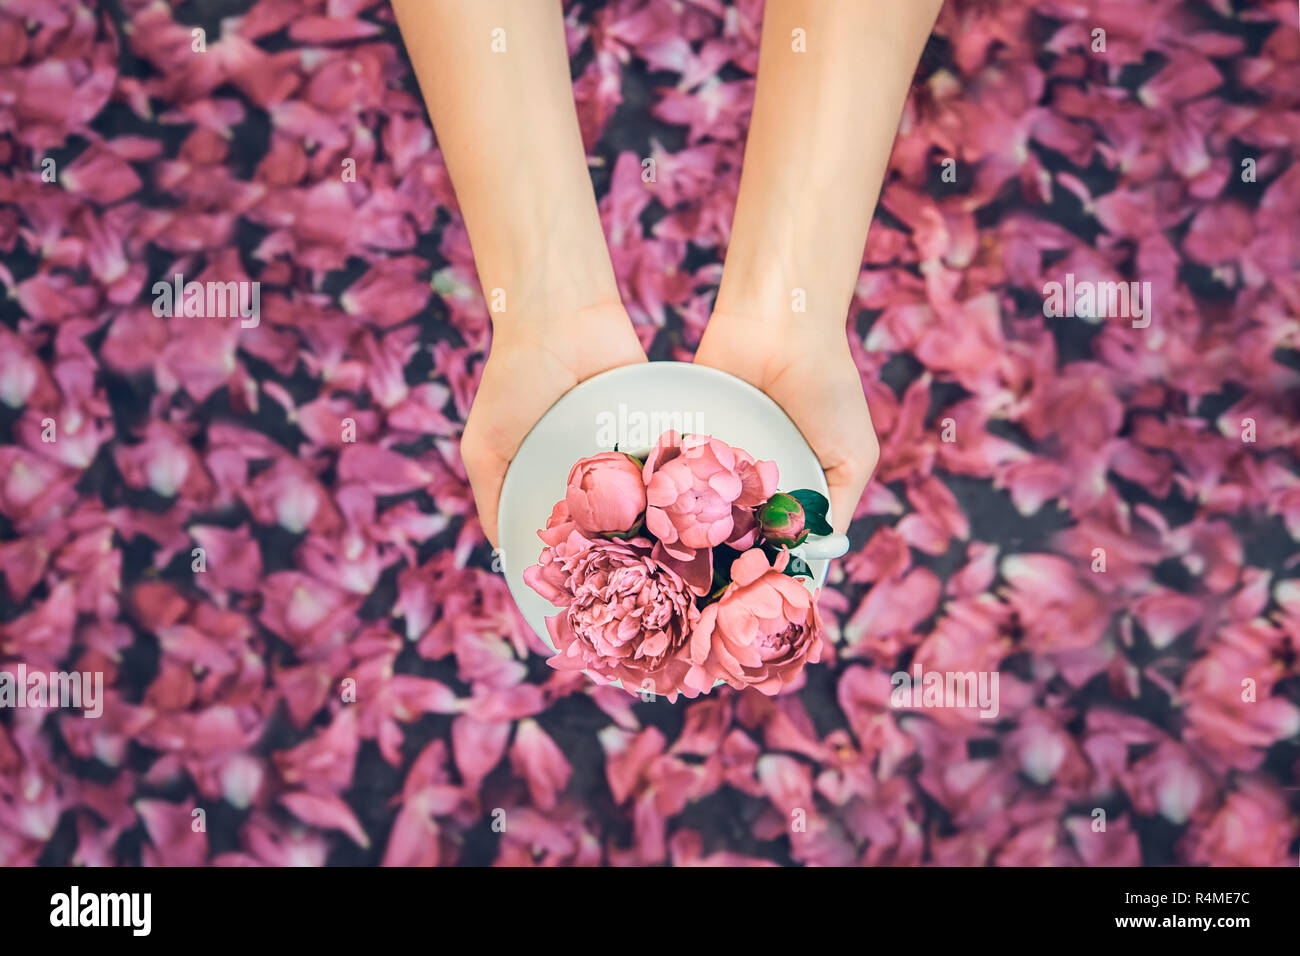 68ae516d56ee Female hands holding beautiful light pink pionies bouquet in cup above dark  background with petals. Flat lay. Muted colors. Love gift greeting complim